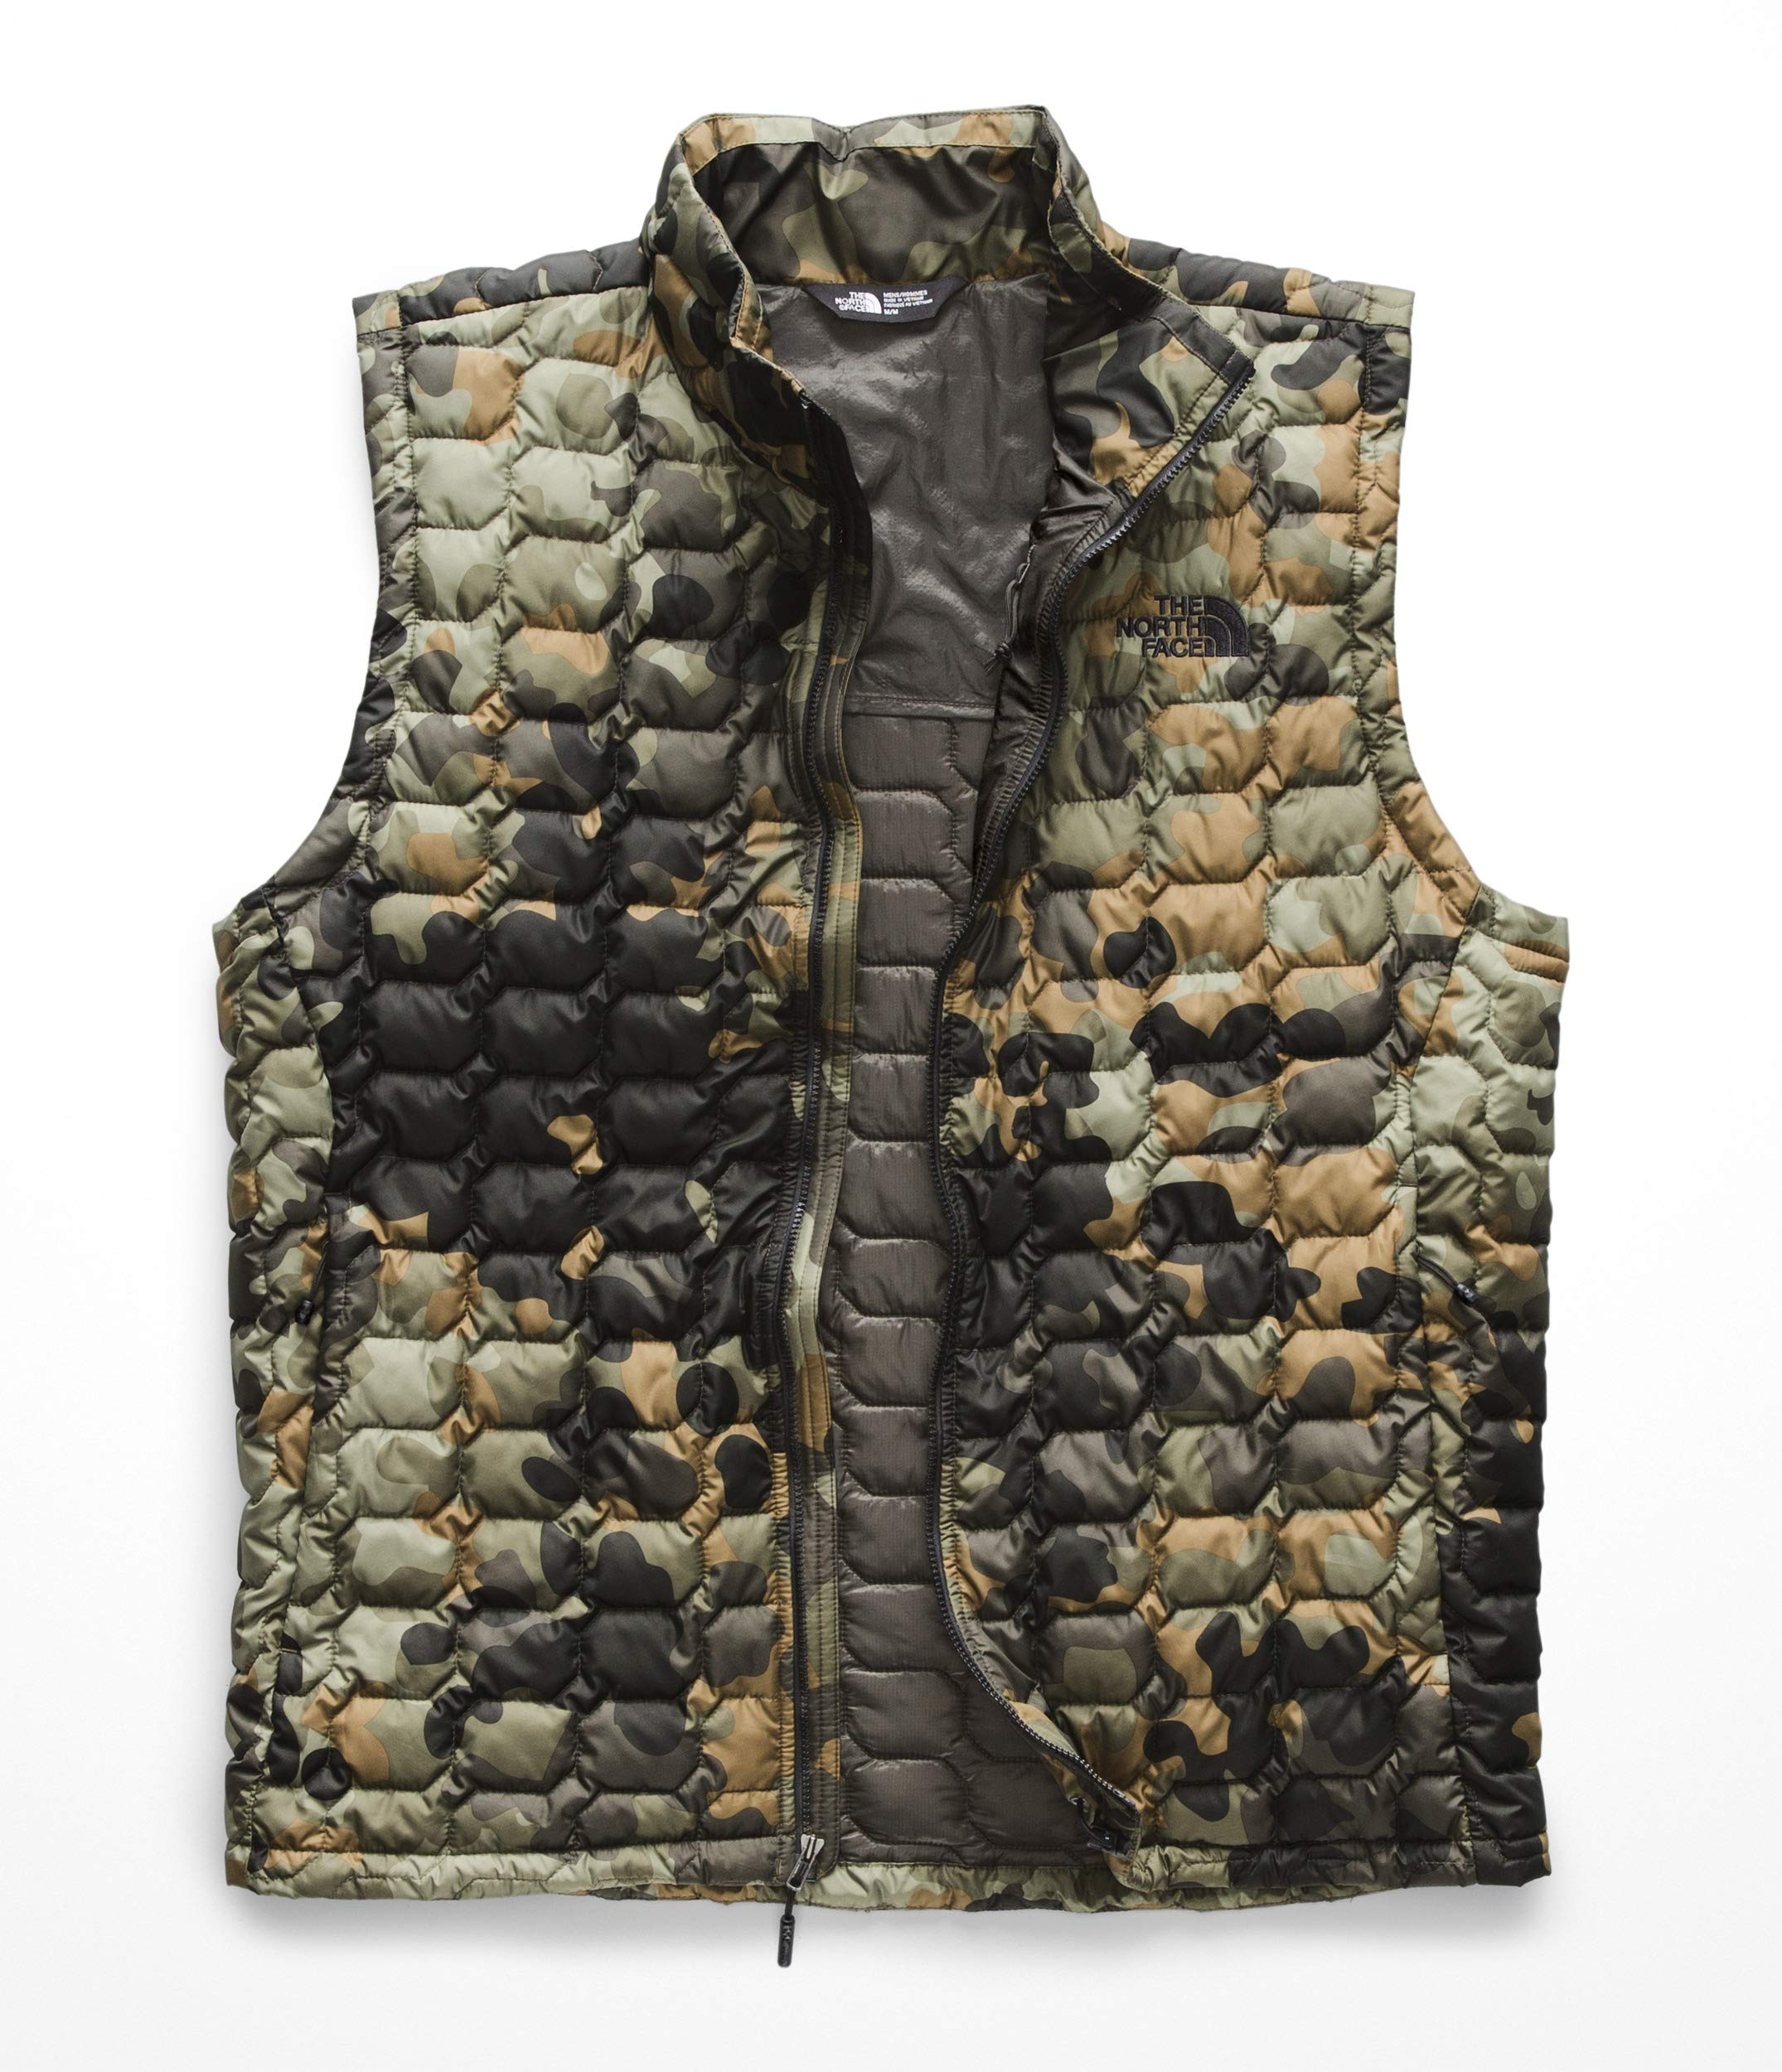 The North Face Men's Thermoball Vest - New Taupe Green Macrofleck Camo Print - XL by The North Face